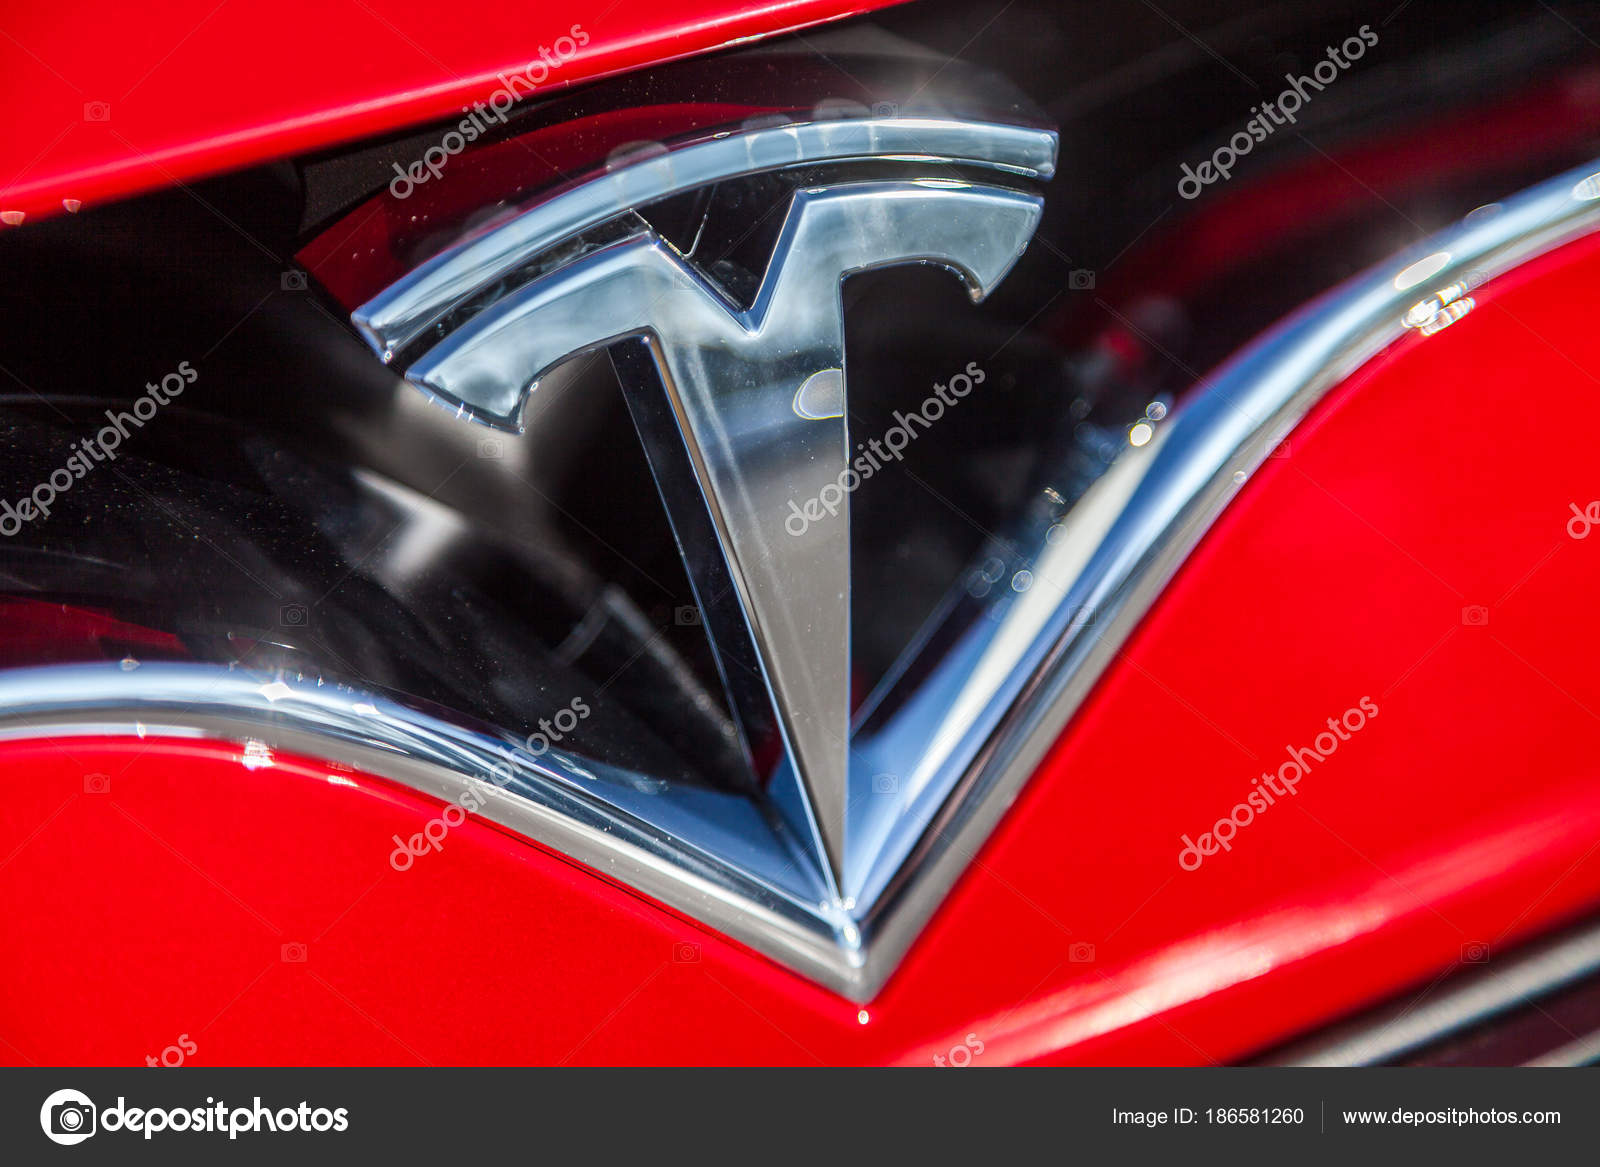 Fuerth germany march 2018 tesla logo tesla car tesla inc stock fuerth germany march 2018 tesla logo tesla car tesla inc stock photo buycottarizona Gallery